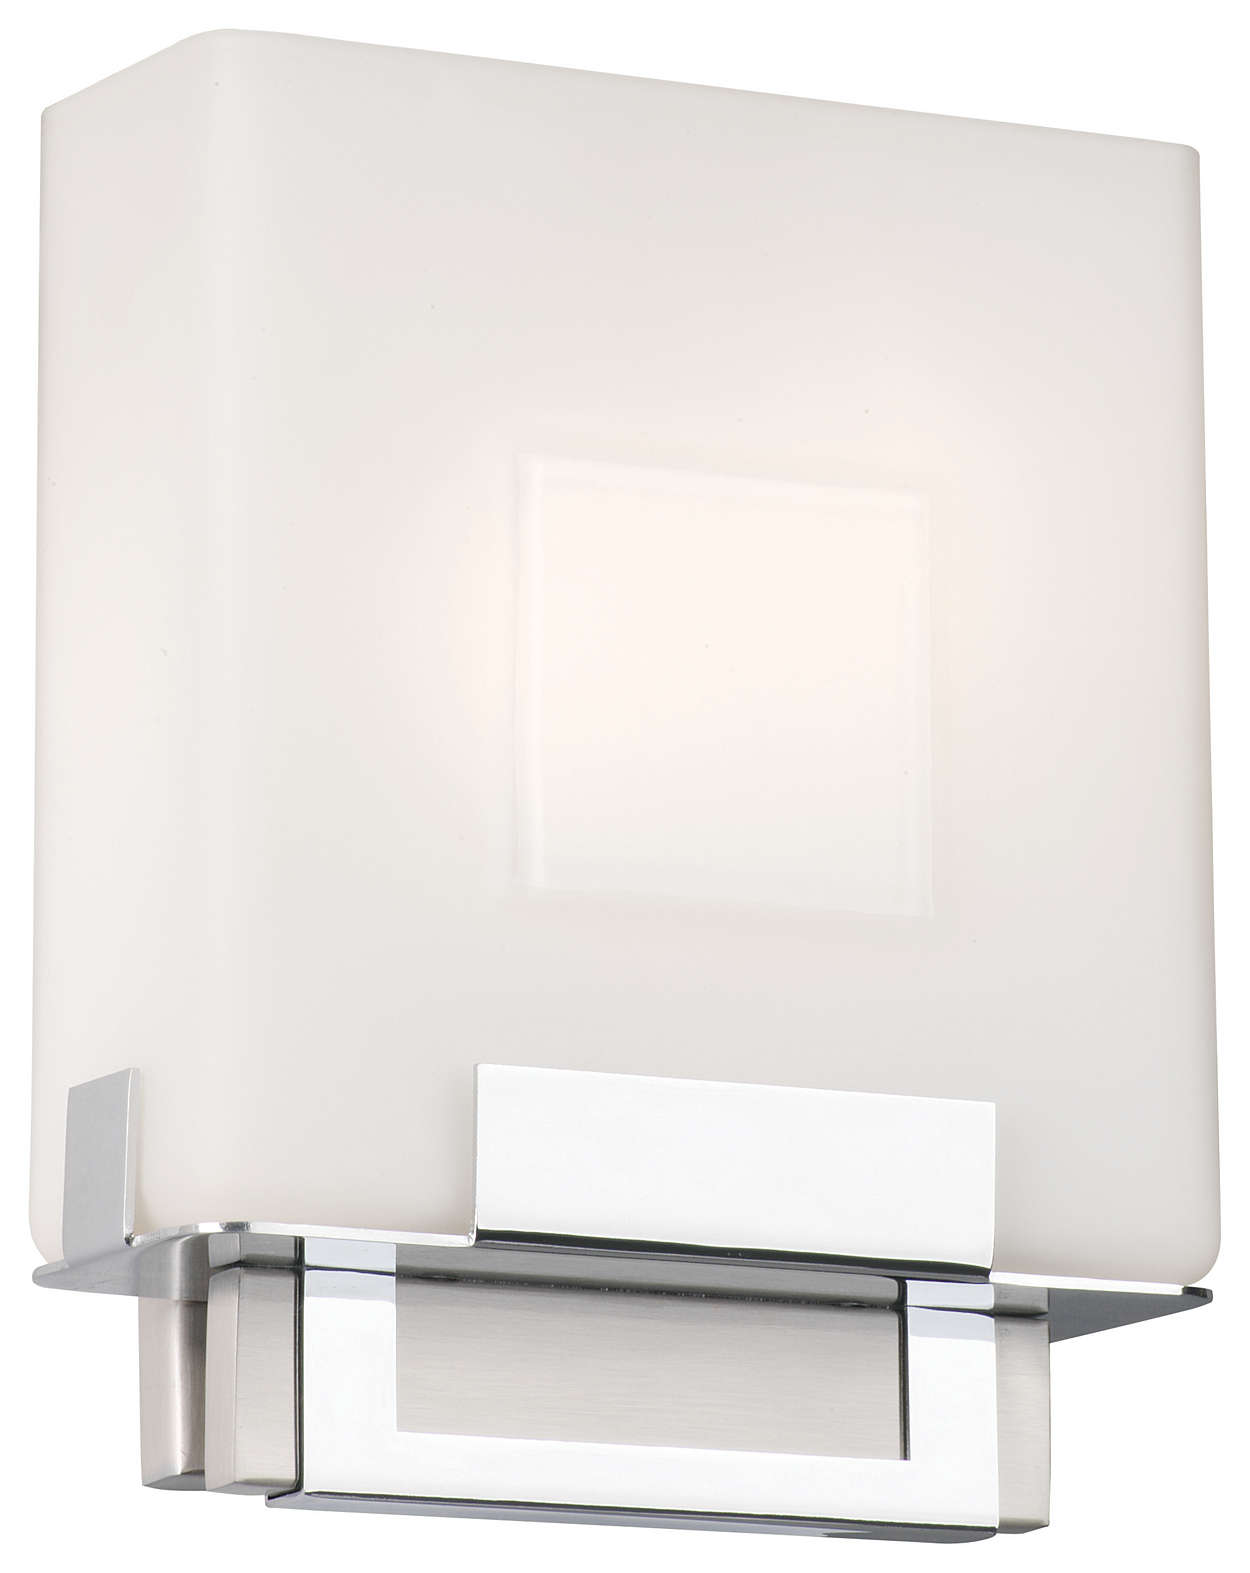 Square 2-light Bath in Satin Nickel finish